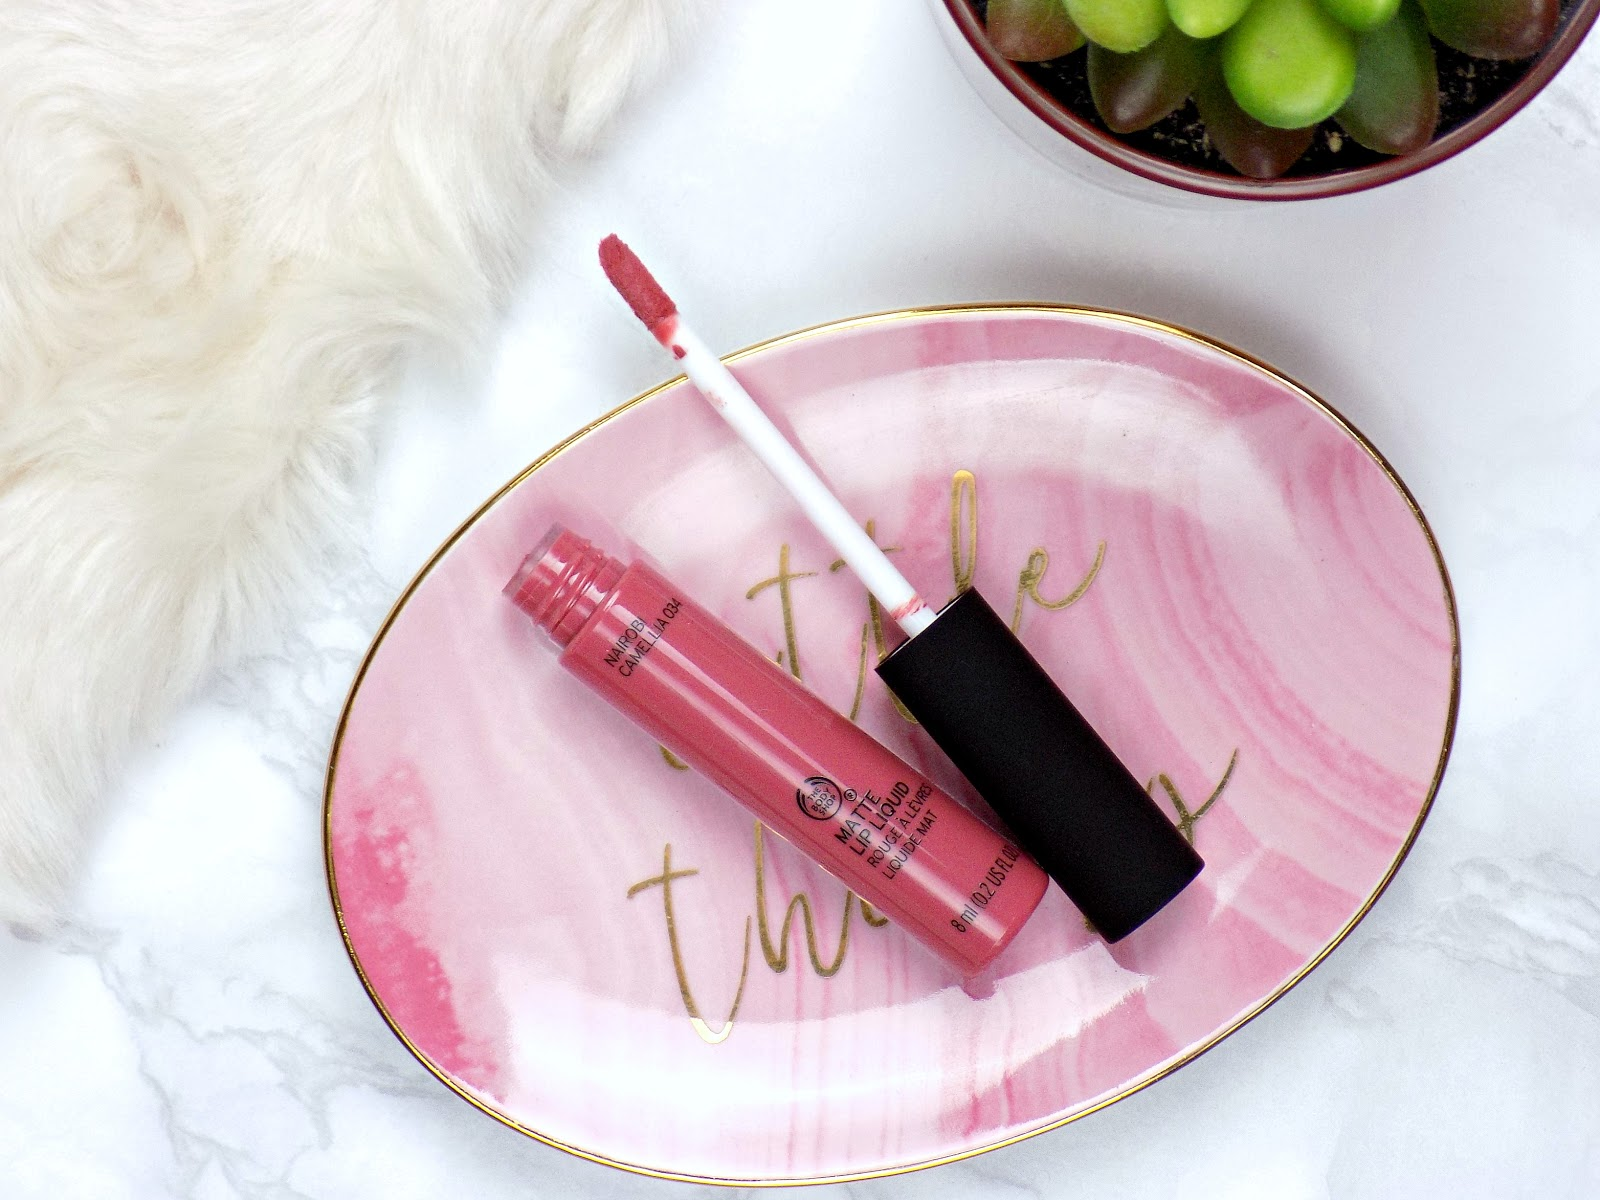 The Body Shop Matte Lip Liquid Lipstick